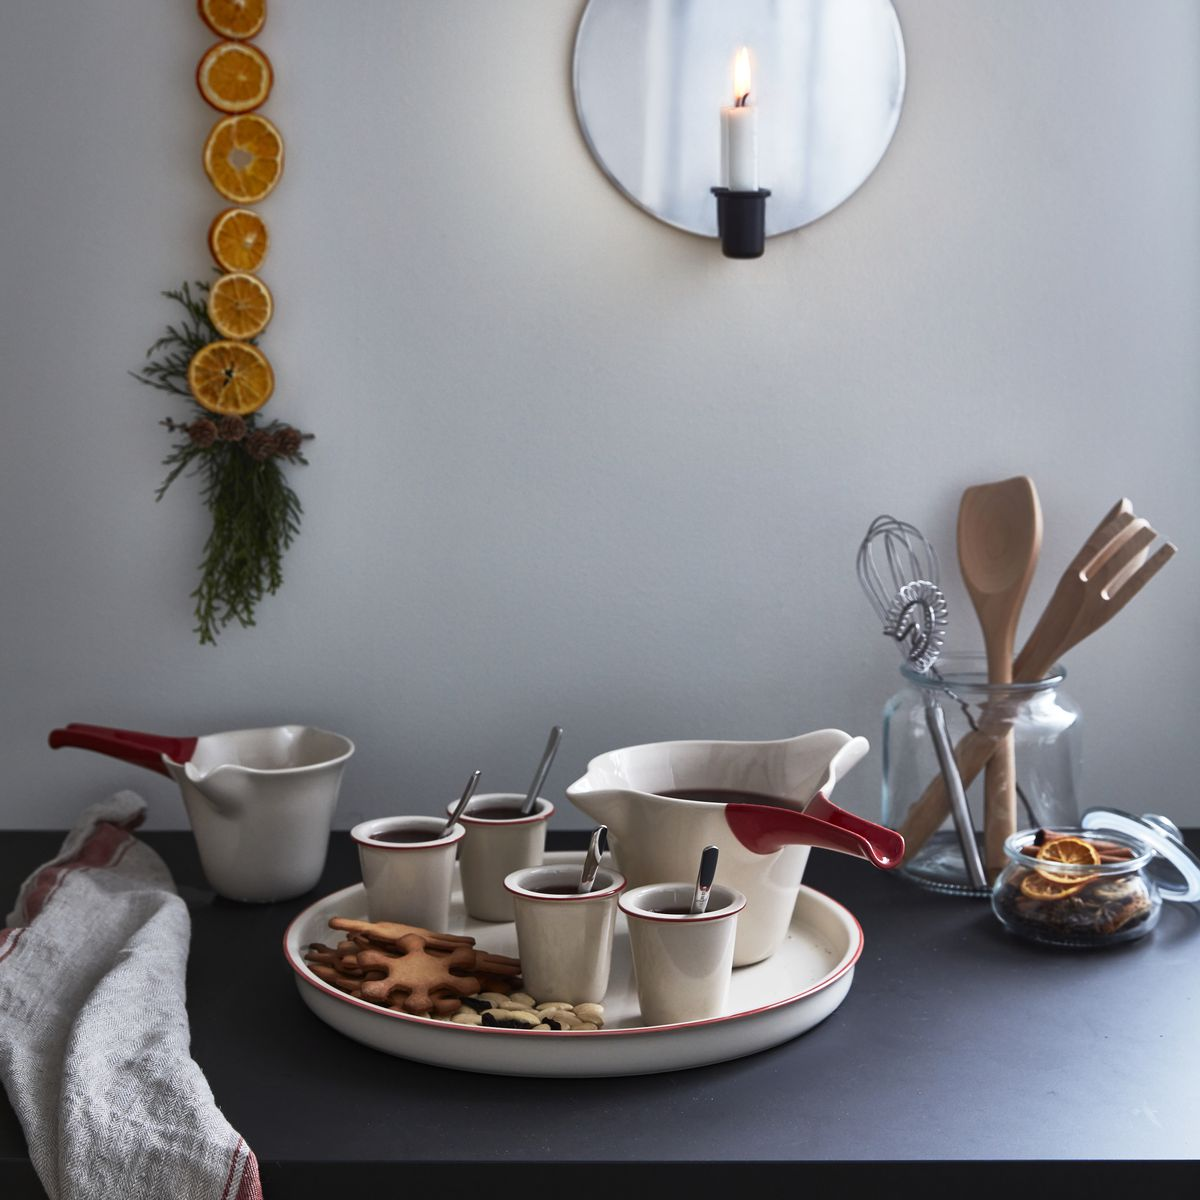 On a table sits various serveware, including a tray with cookies and mugs, and a jar with cooking utensils. A round mirror on the wall has a built-in candle holder in the front.